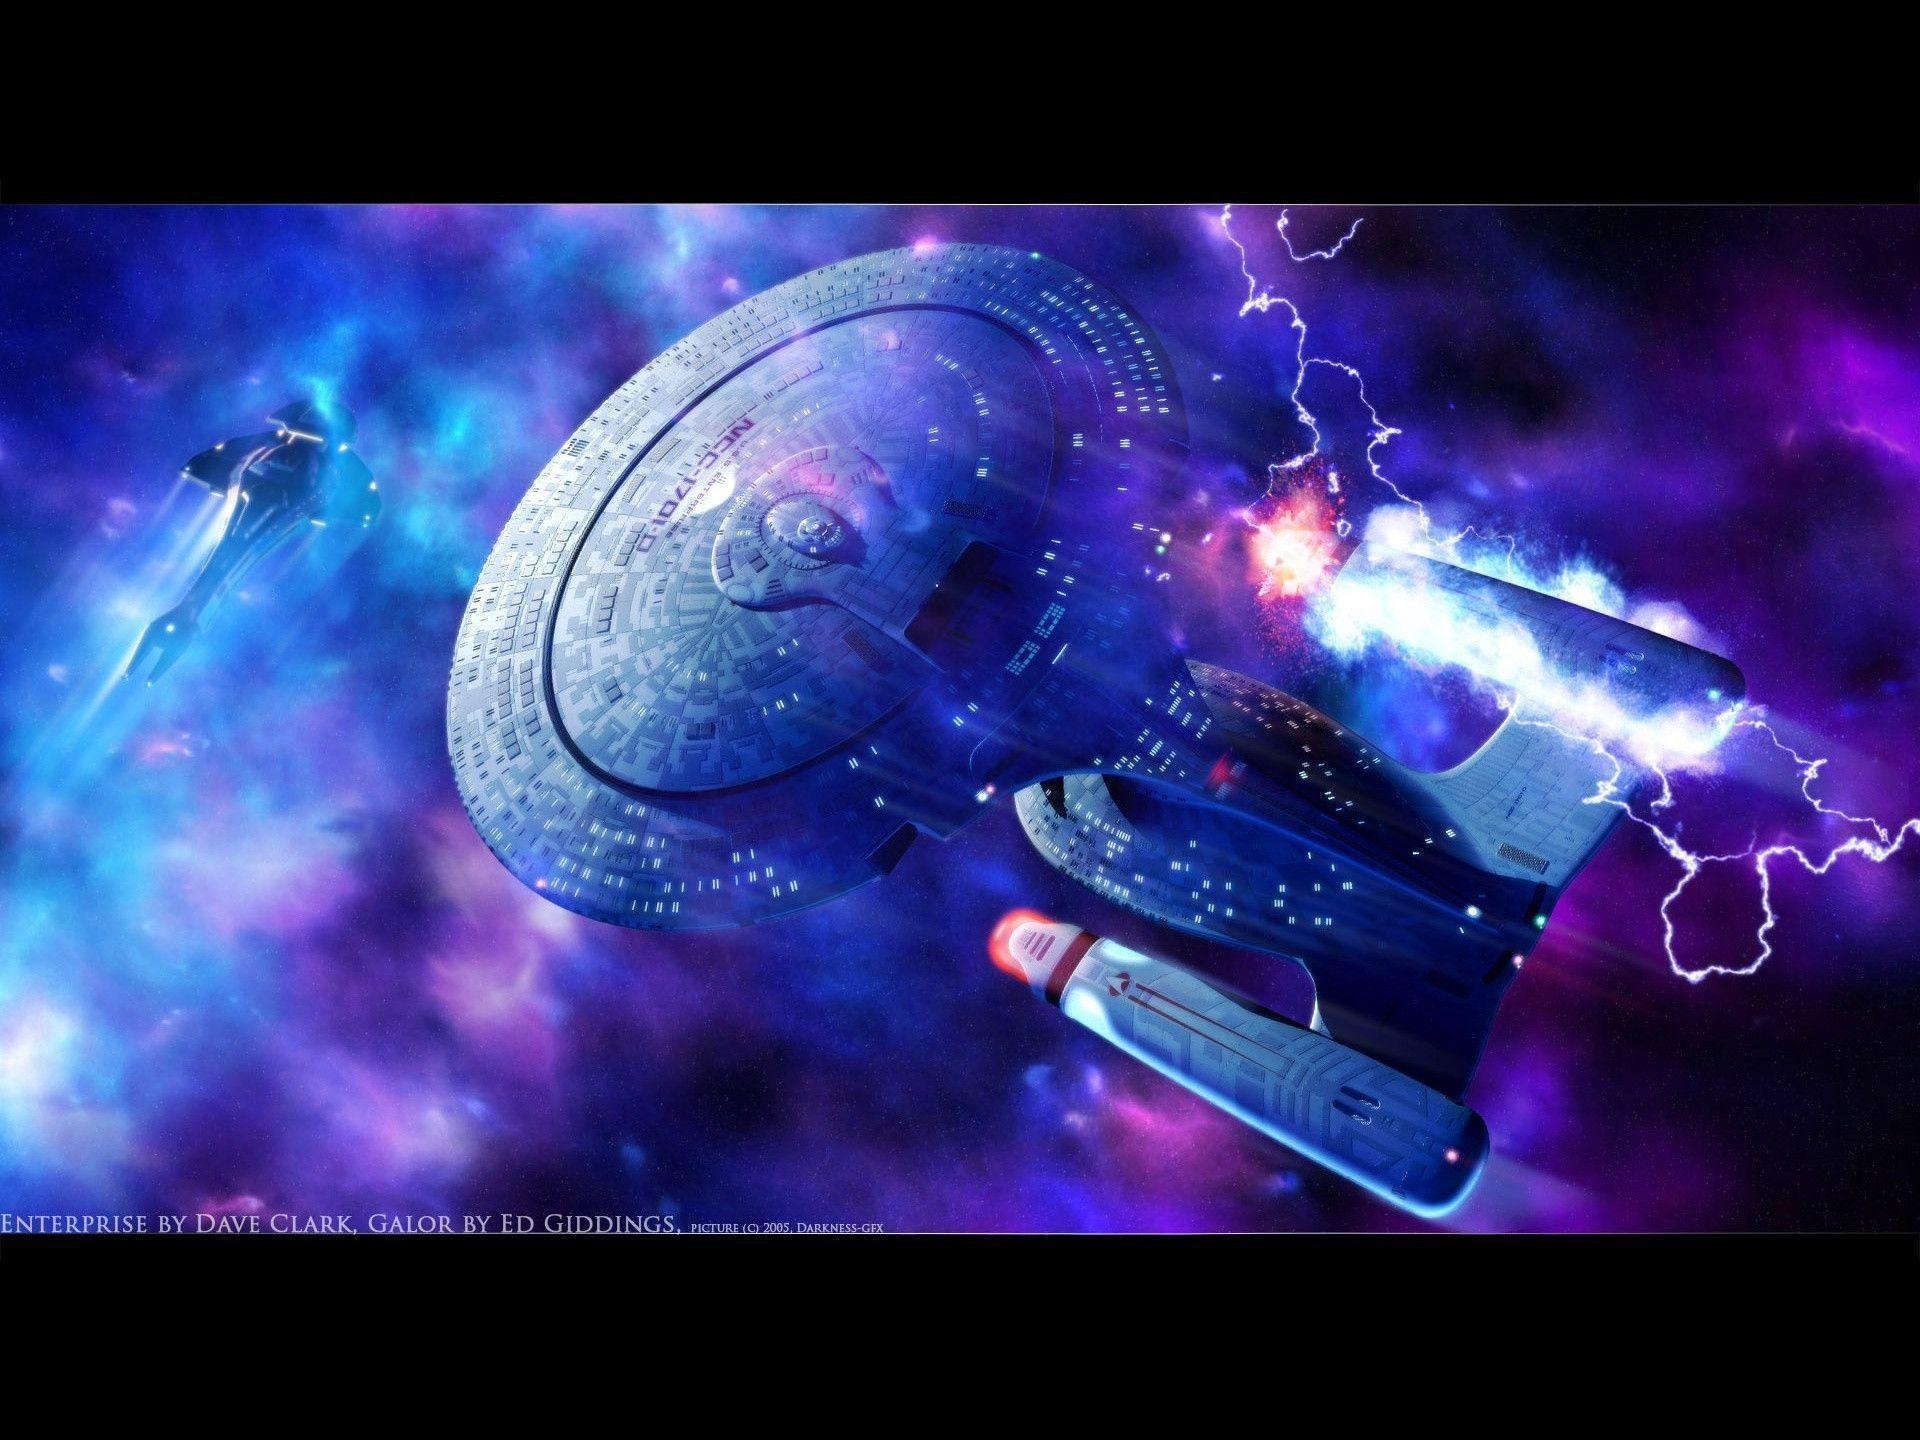 star trek wallpaper by - photo #13